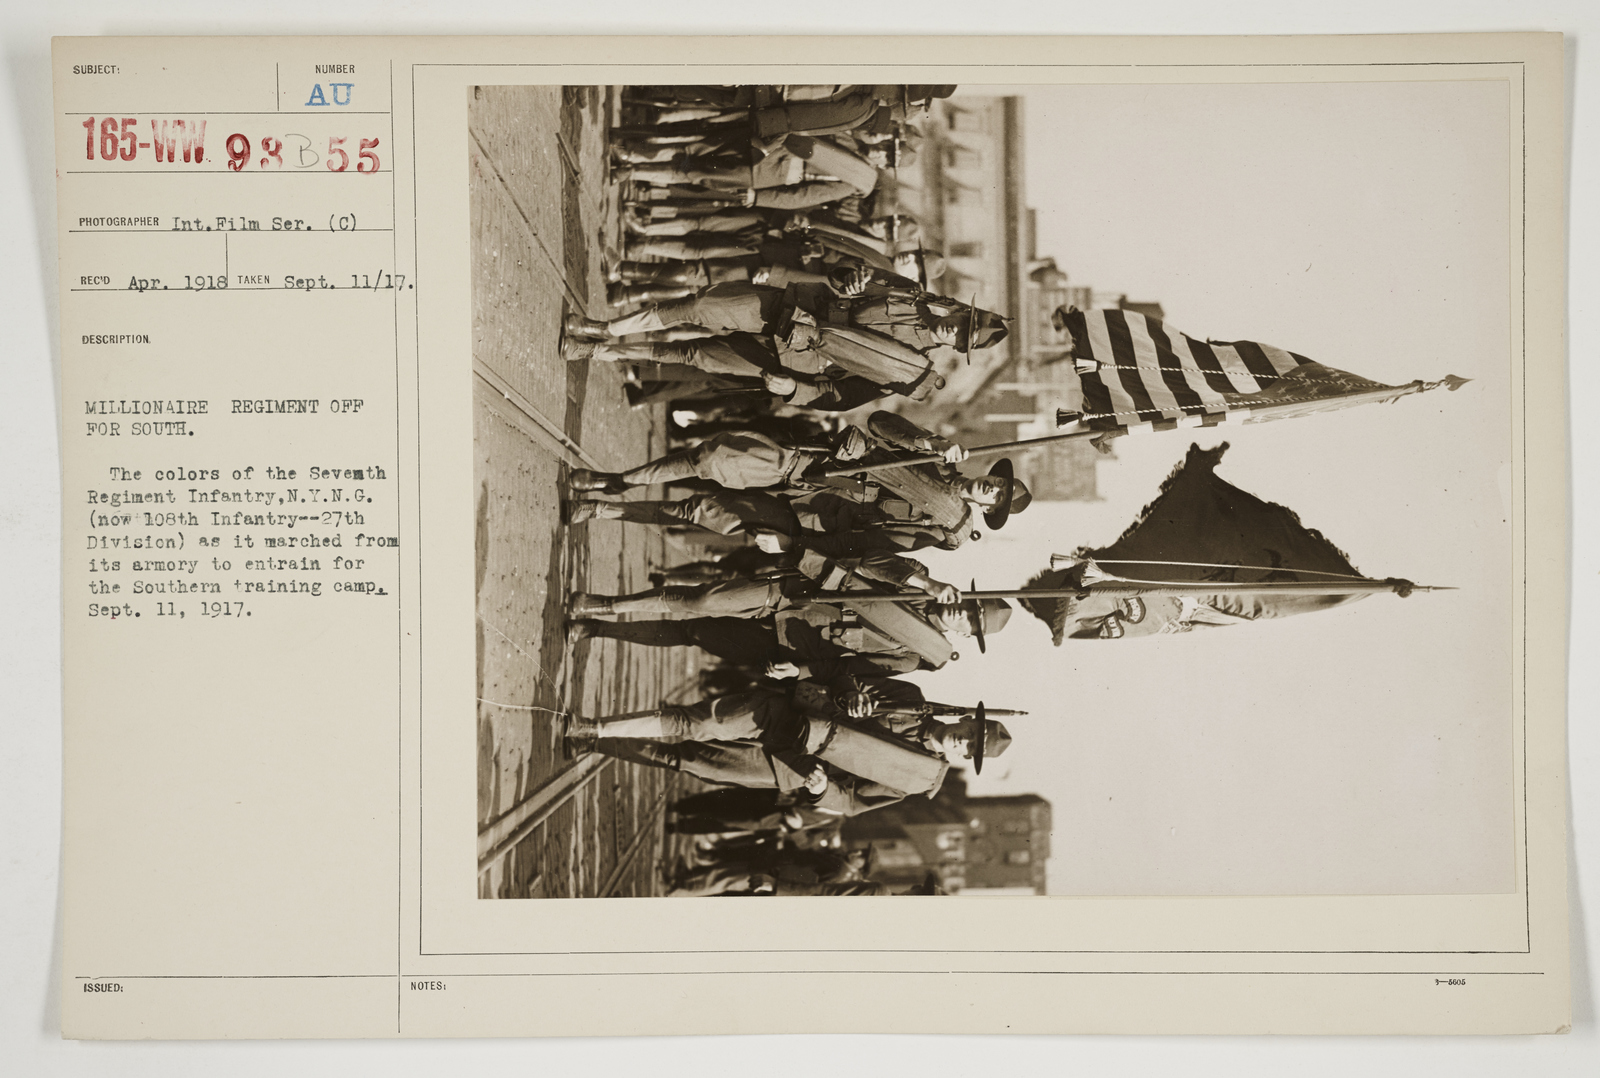 Ceremonies - Salutes and Parades - New York - Millionaire Regiment off for South